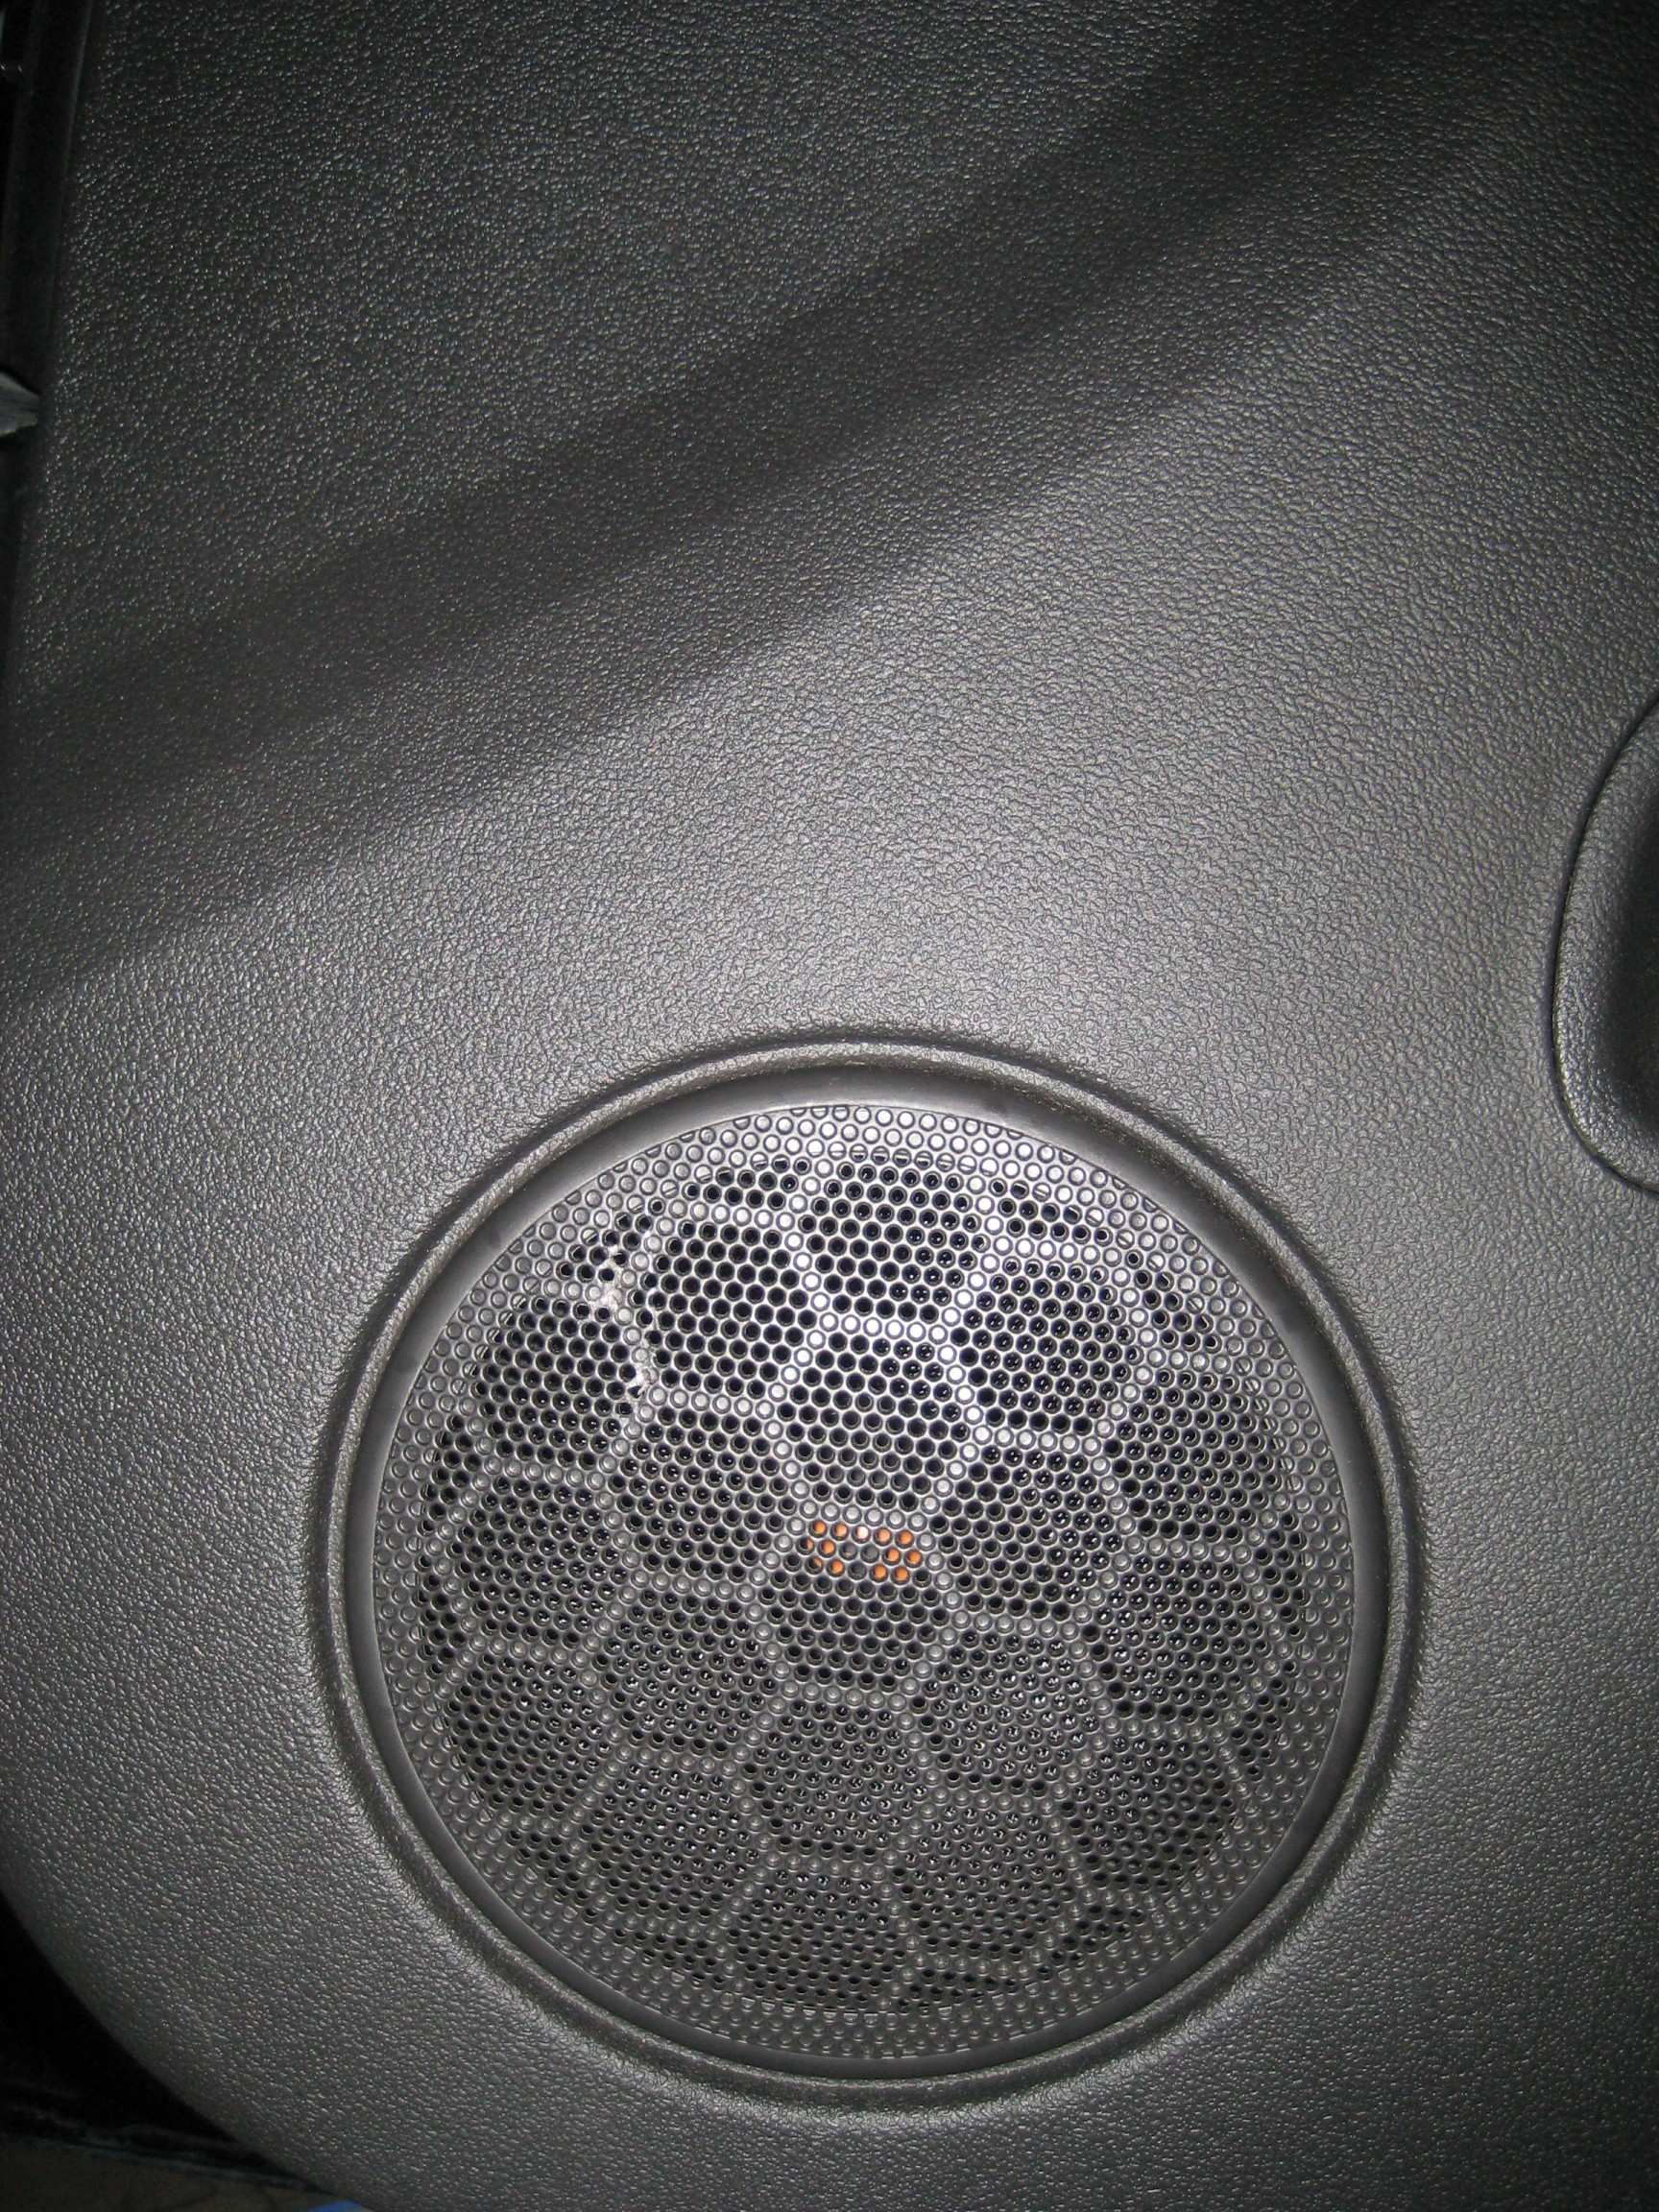 Speaker Upgrade/Custom Subwoofer Enclosure-038-1728-x-2304-.jpg